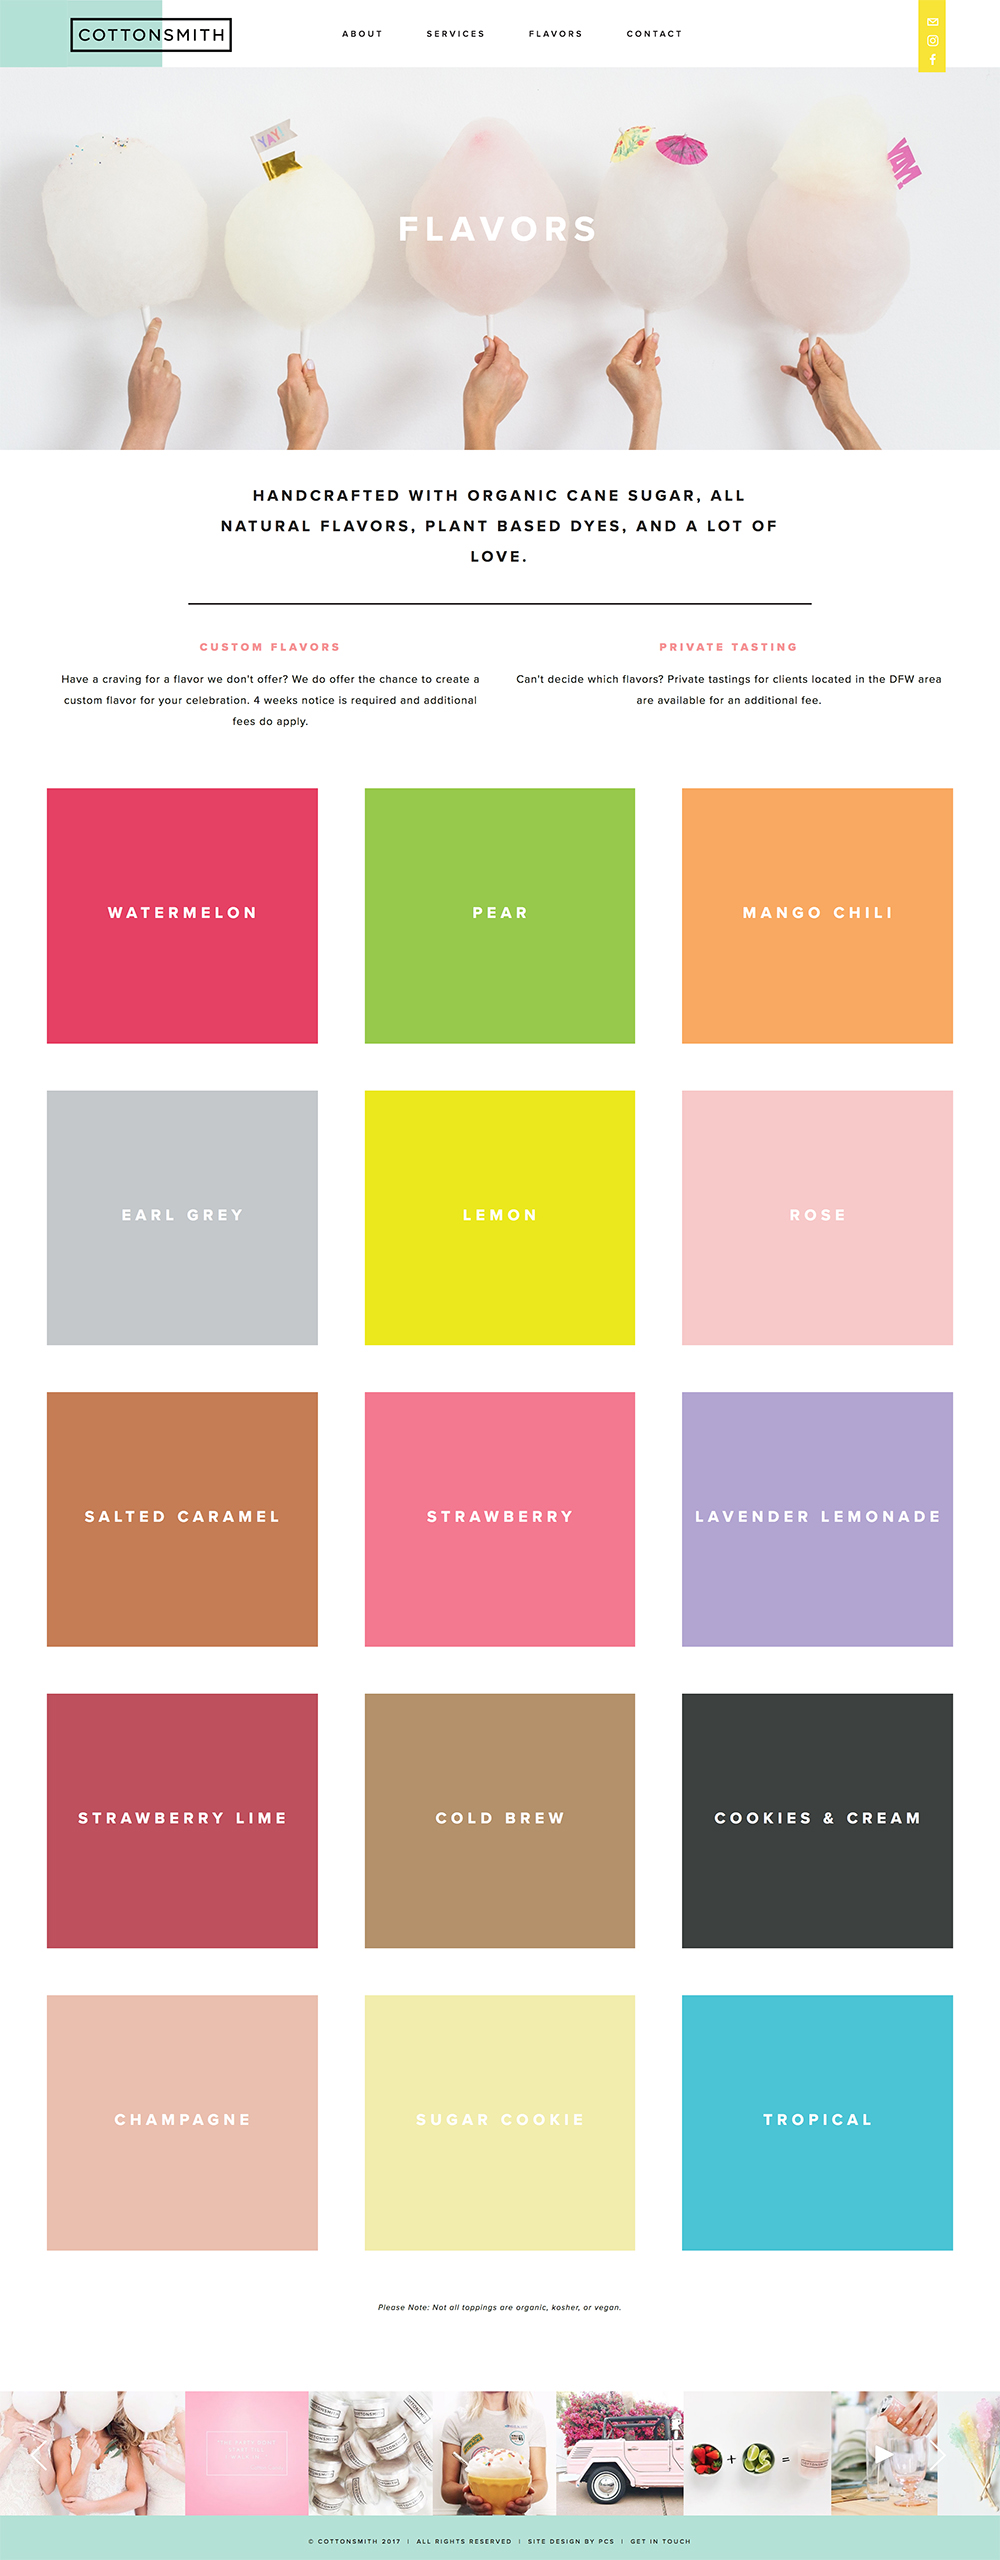 We are obsessed with the use of colour blocks on the flavours page!